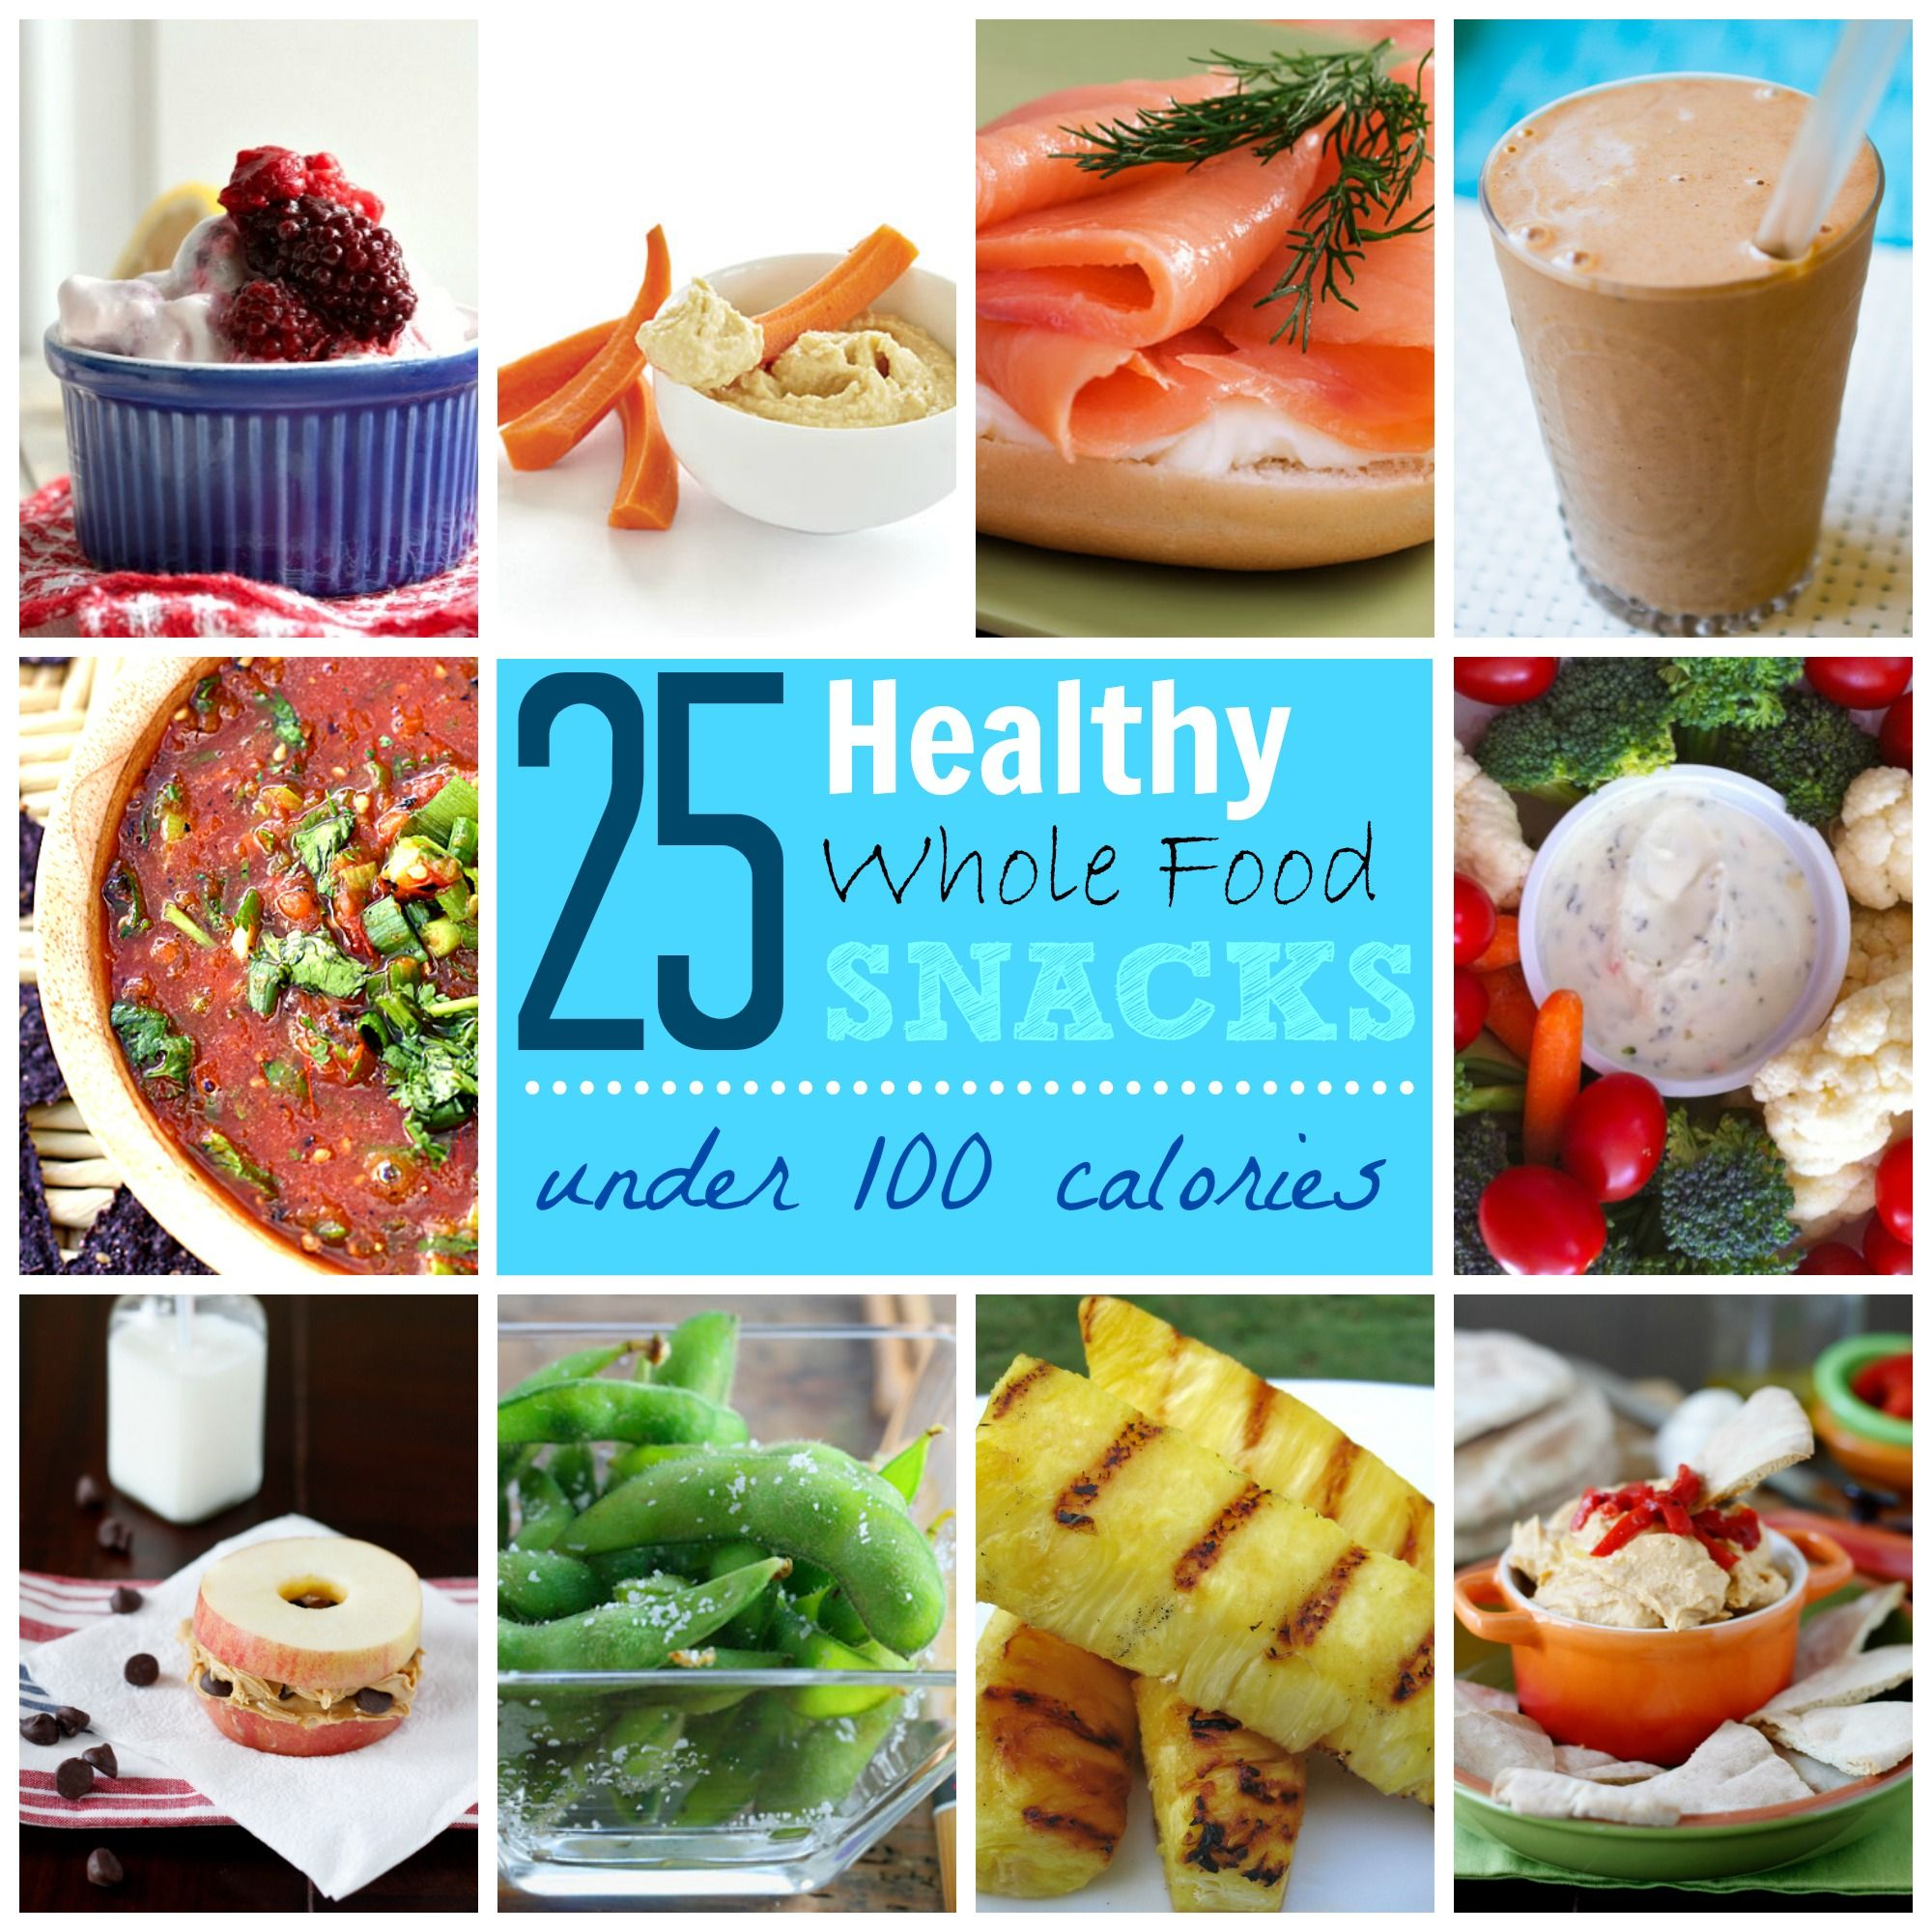 Watch 25 Whole Food Snacks video